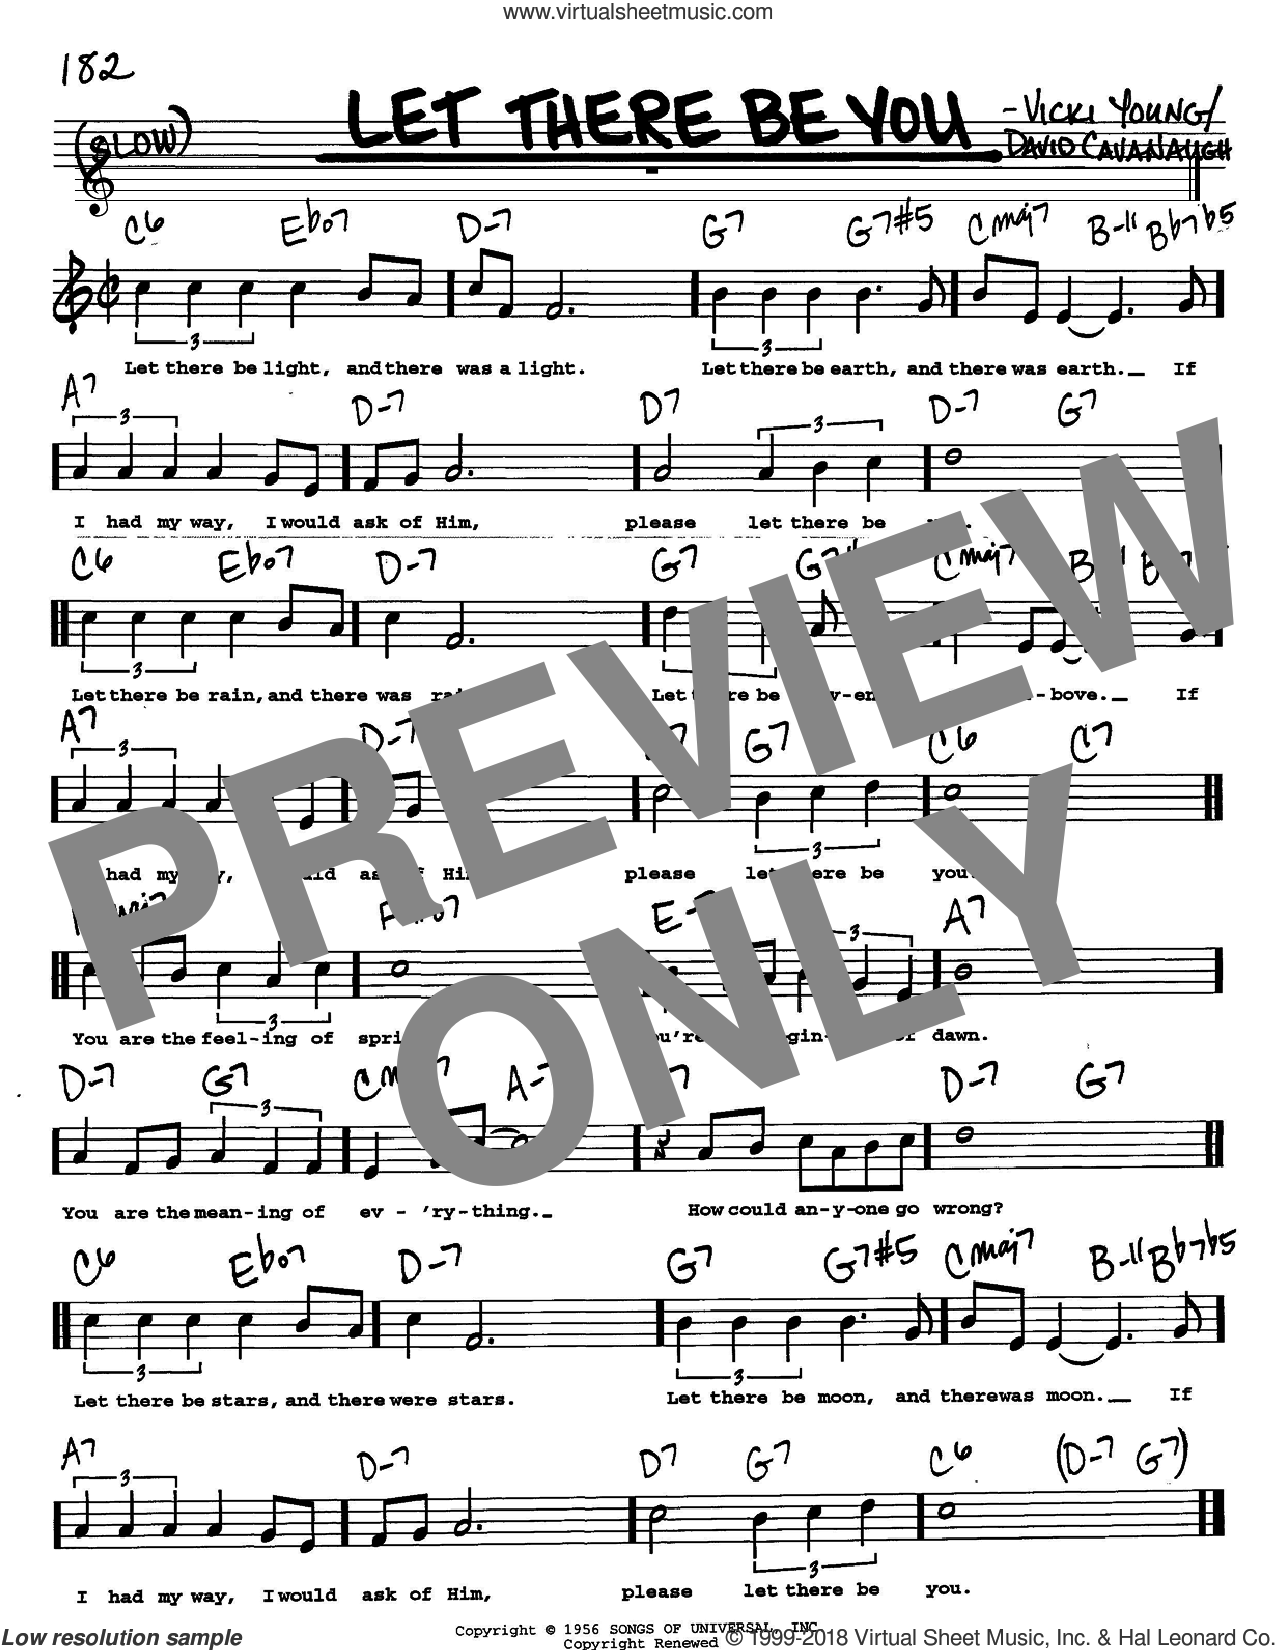 Let There Be You sheet music for voice and other instruments  by Victor Young and Dave Cavanaugh, intermediate skill level